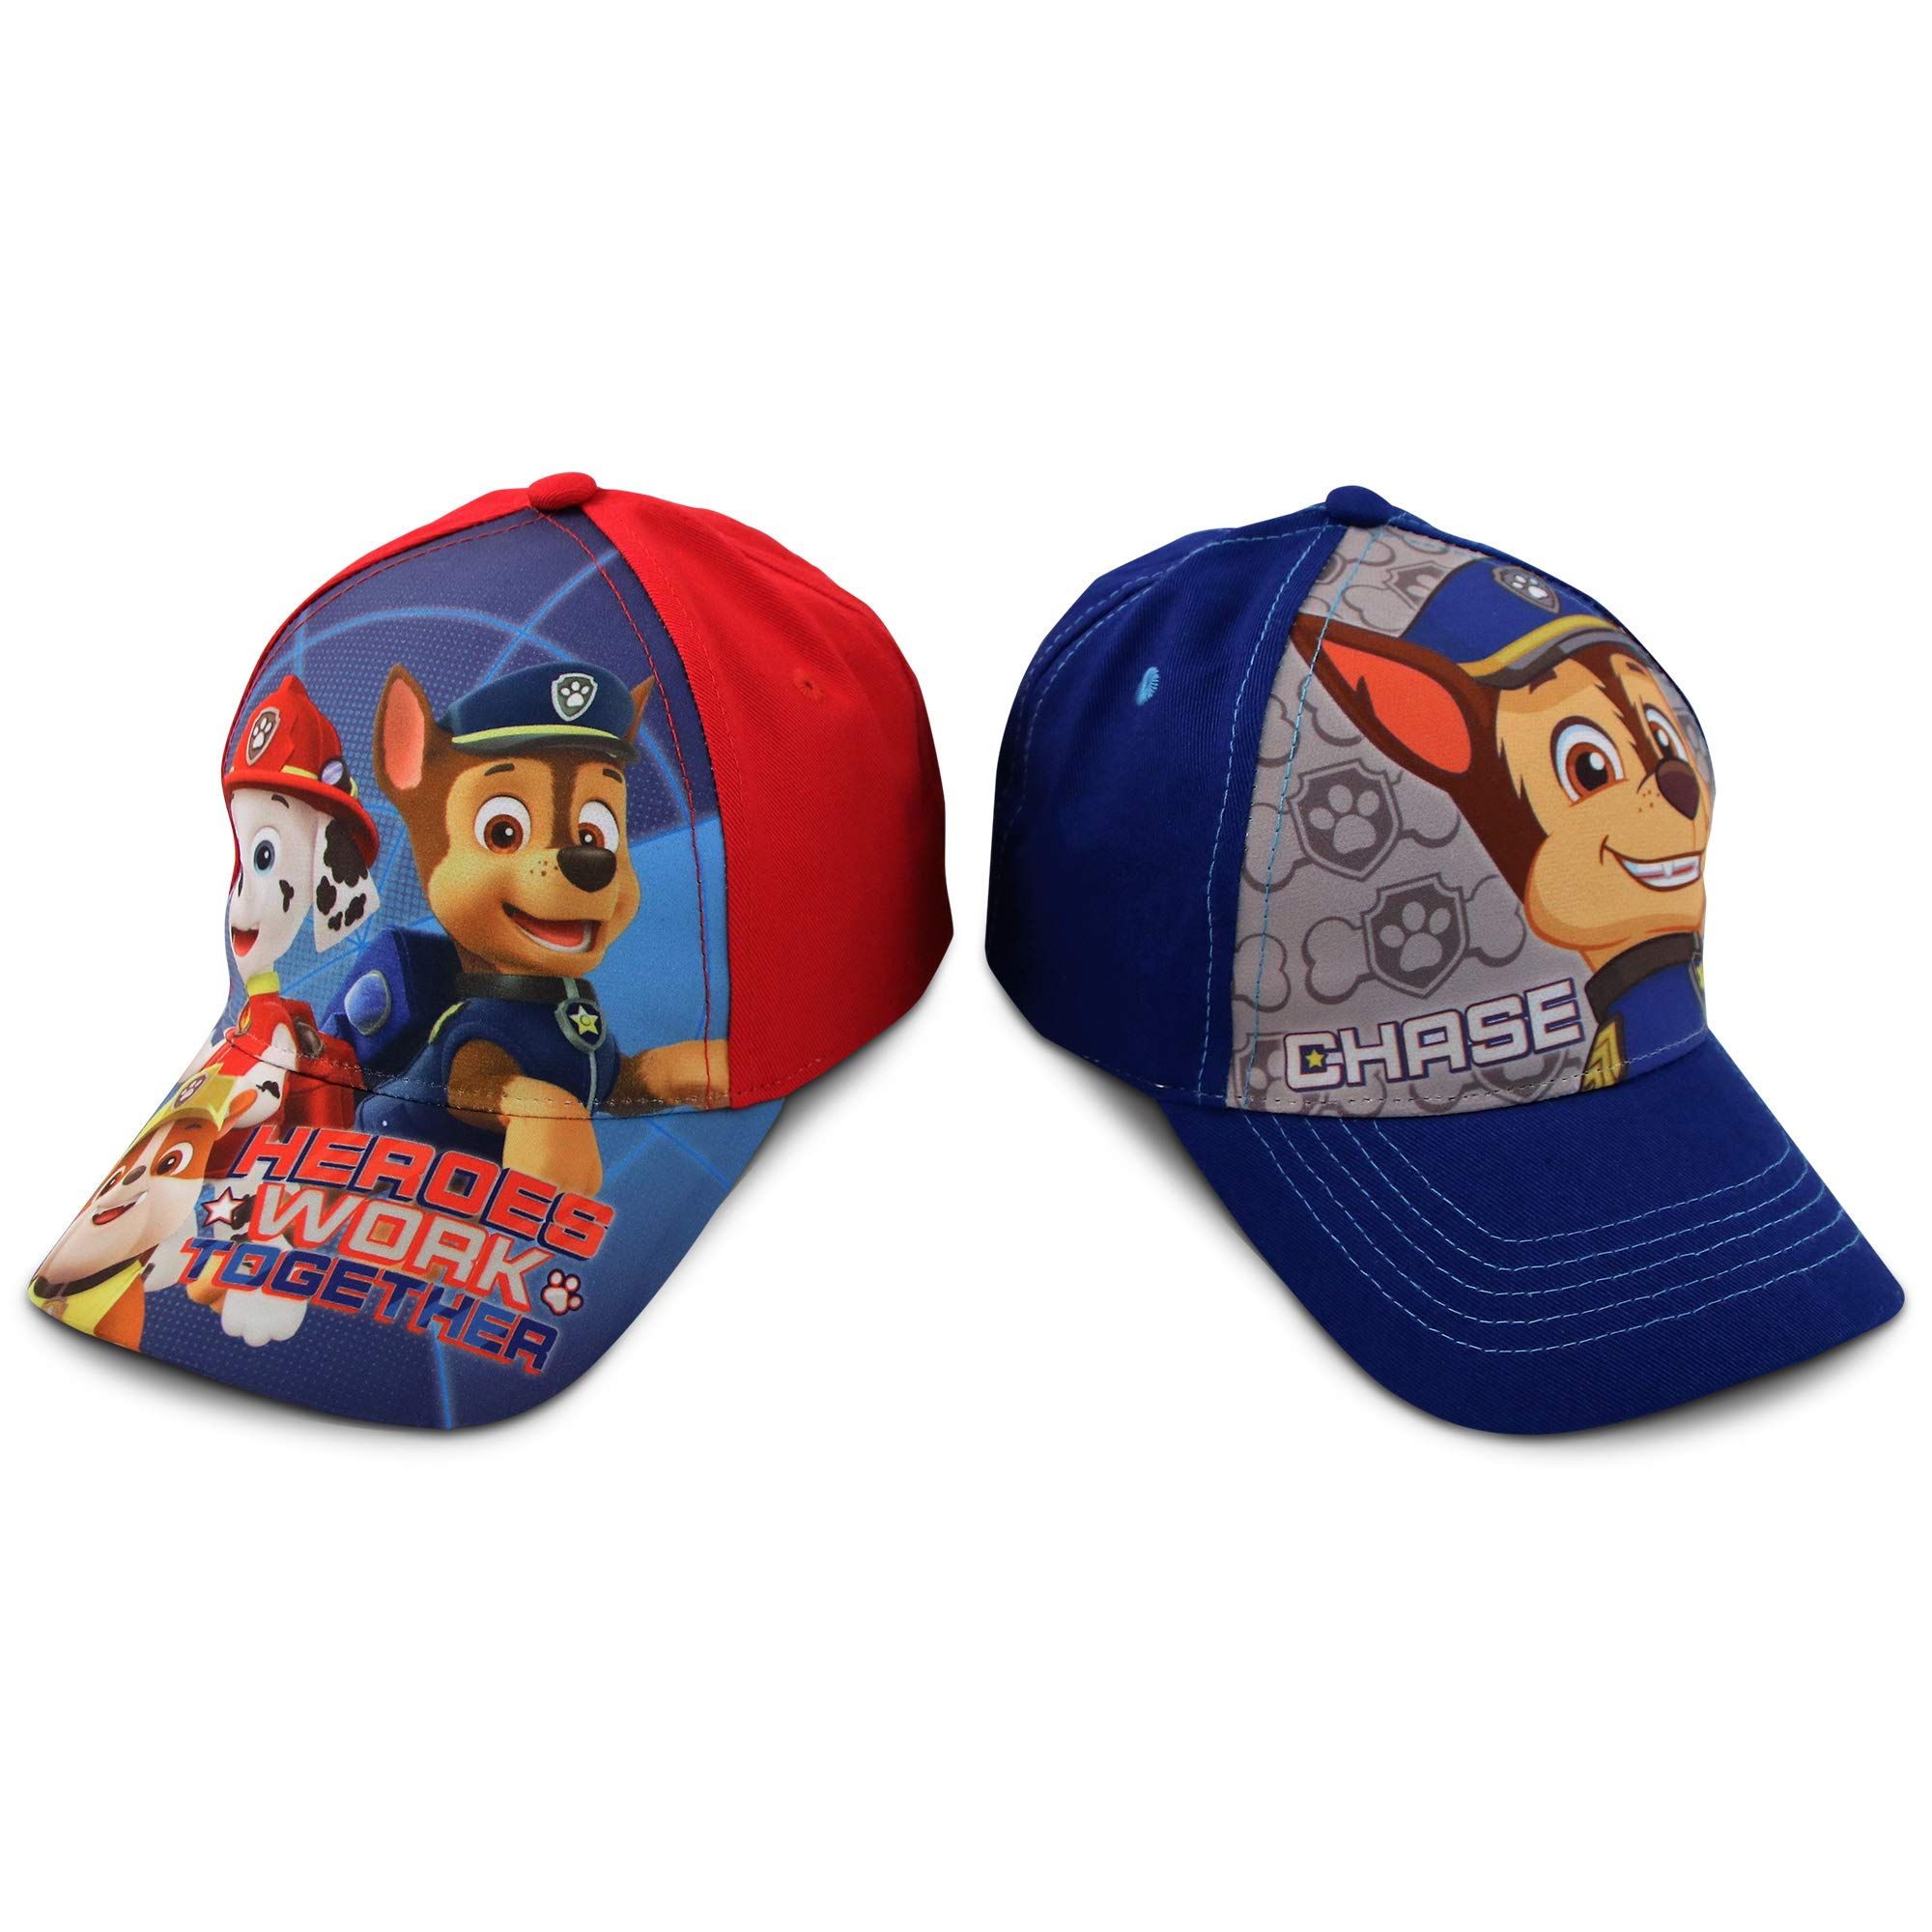 Paw Patrol Preschooler and Toddler Baseball hat, Pack of 2 hats for boys Ages 2-7 | Kids Baseball Cap by Nickelodeon